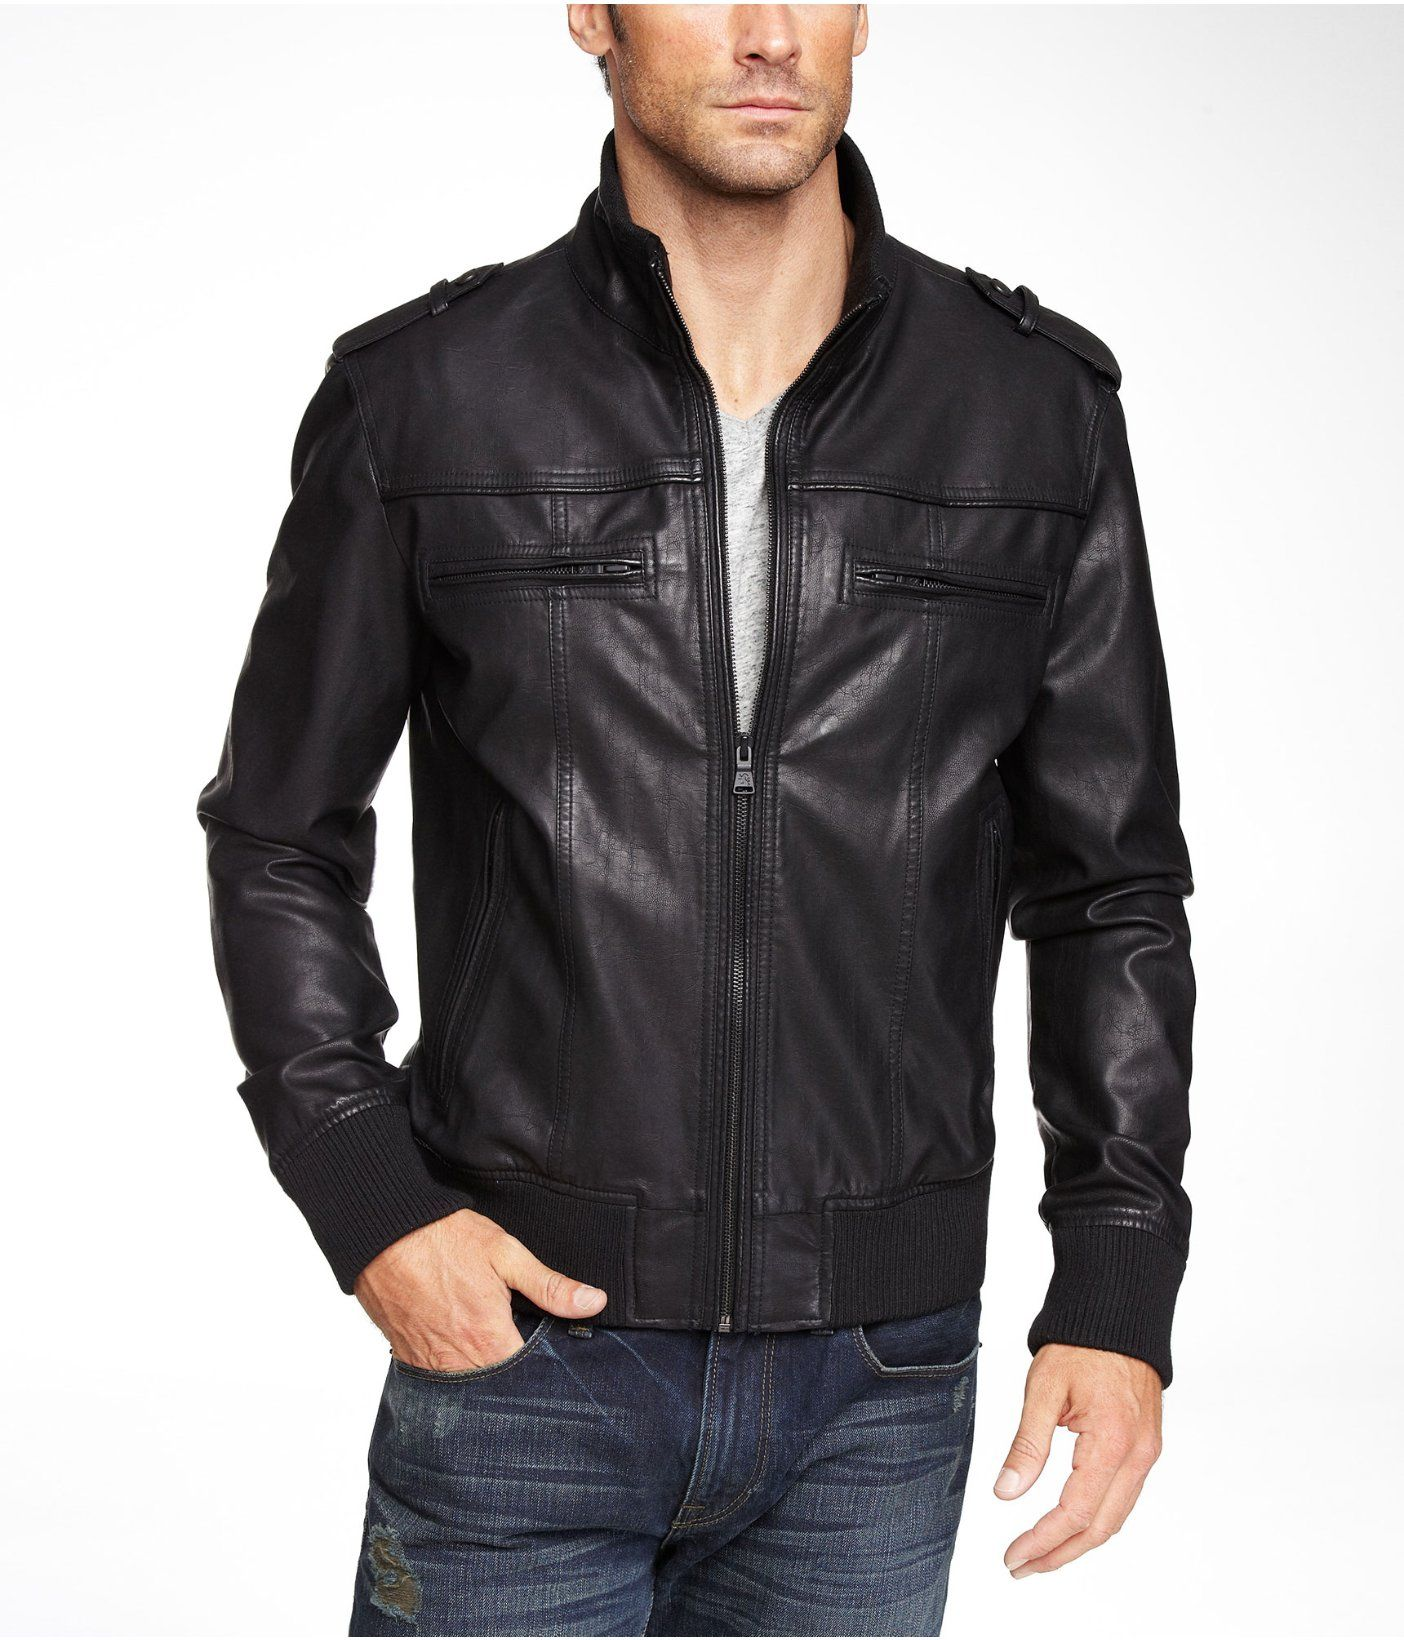 Minus The Leather Knit Trim Bomber Jacket Express Express Outfits Gentlemen Wear Mens Outfits [ 1640 x 1404 Pixel ]